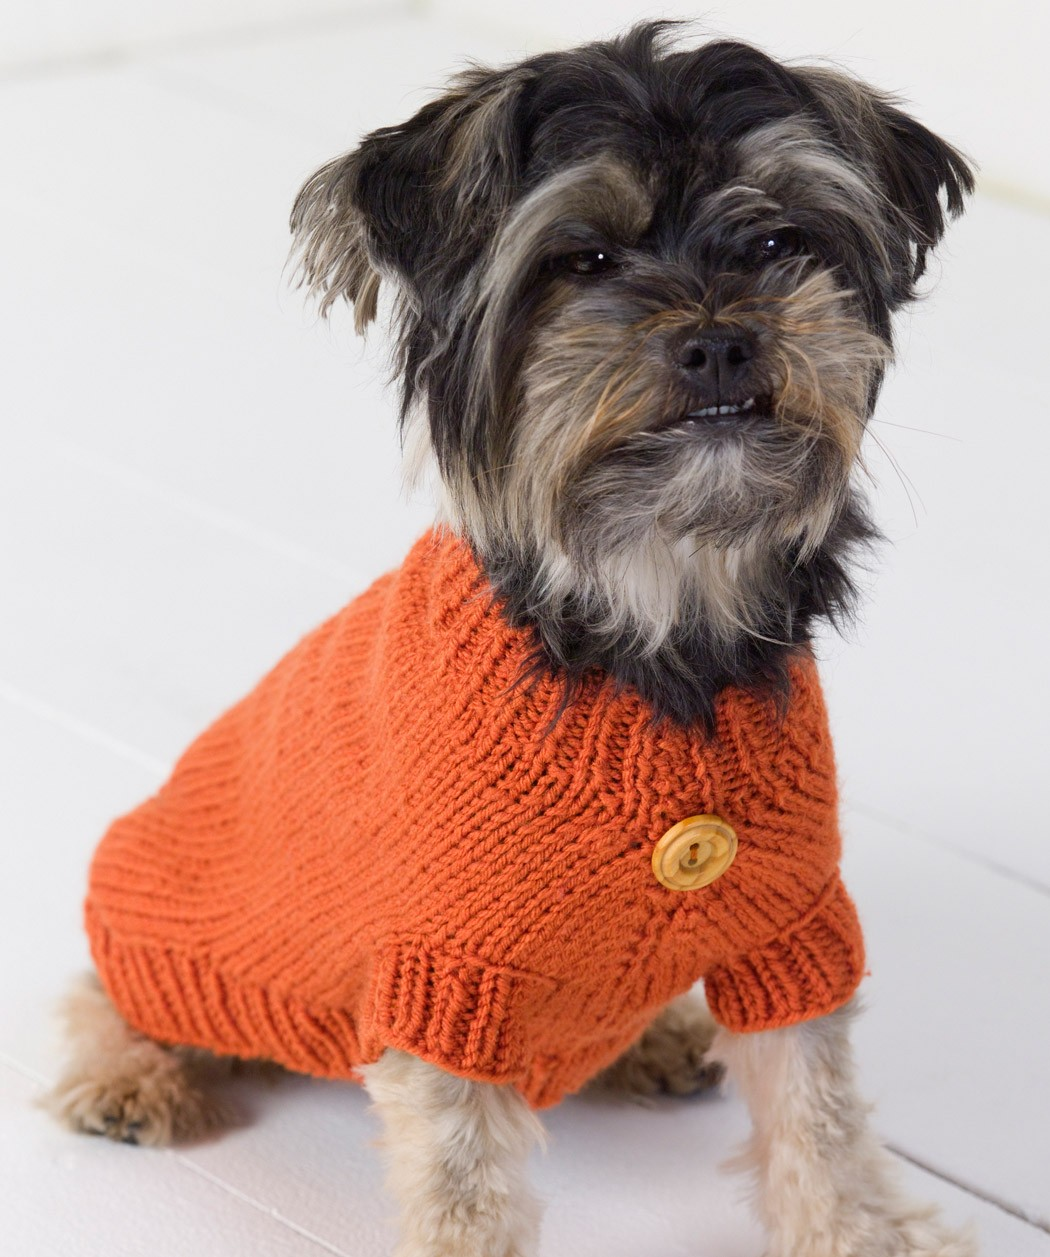 Knitting Pattern Dog Coat Pug : Dog Sweater Knitting Pattern A Knitting Blog